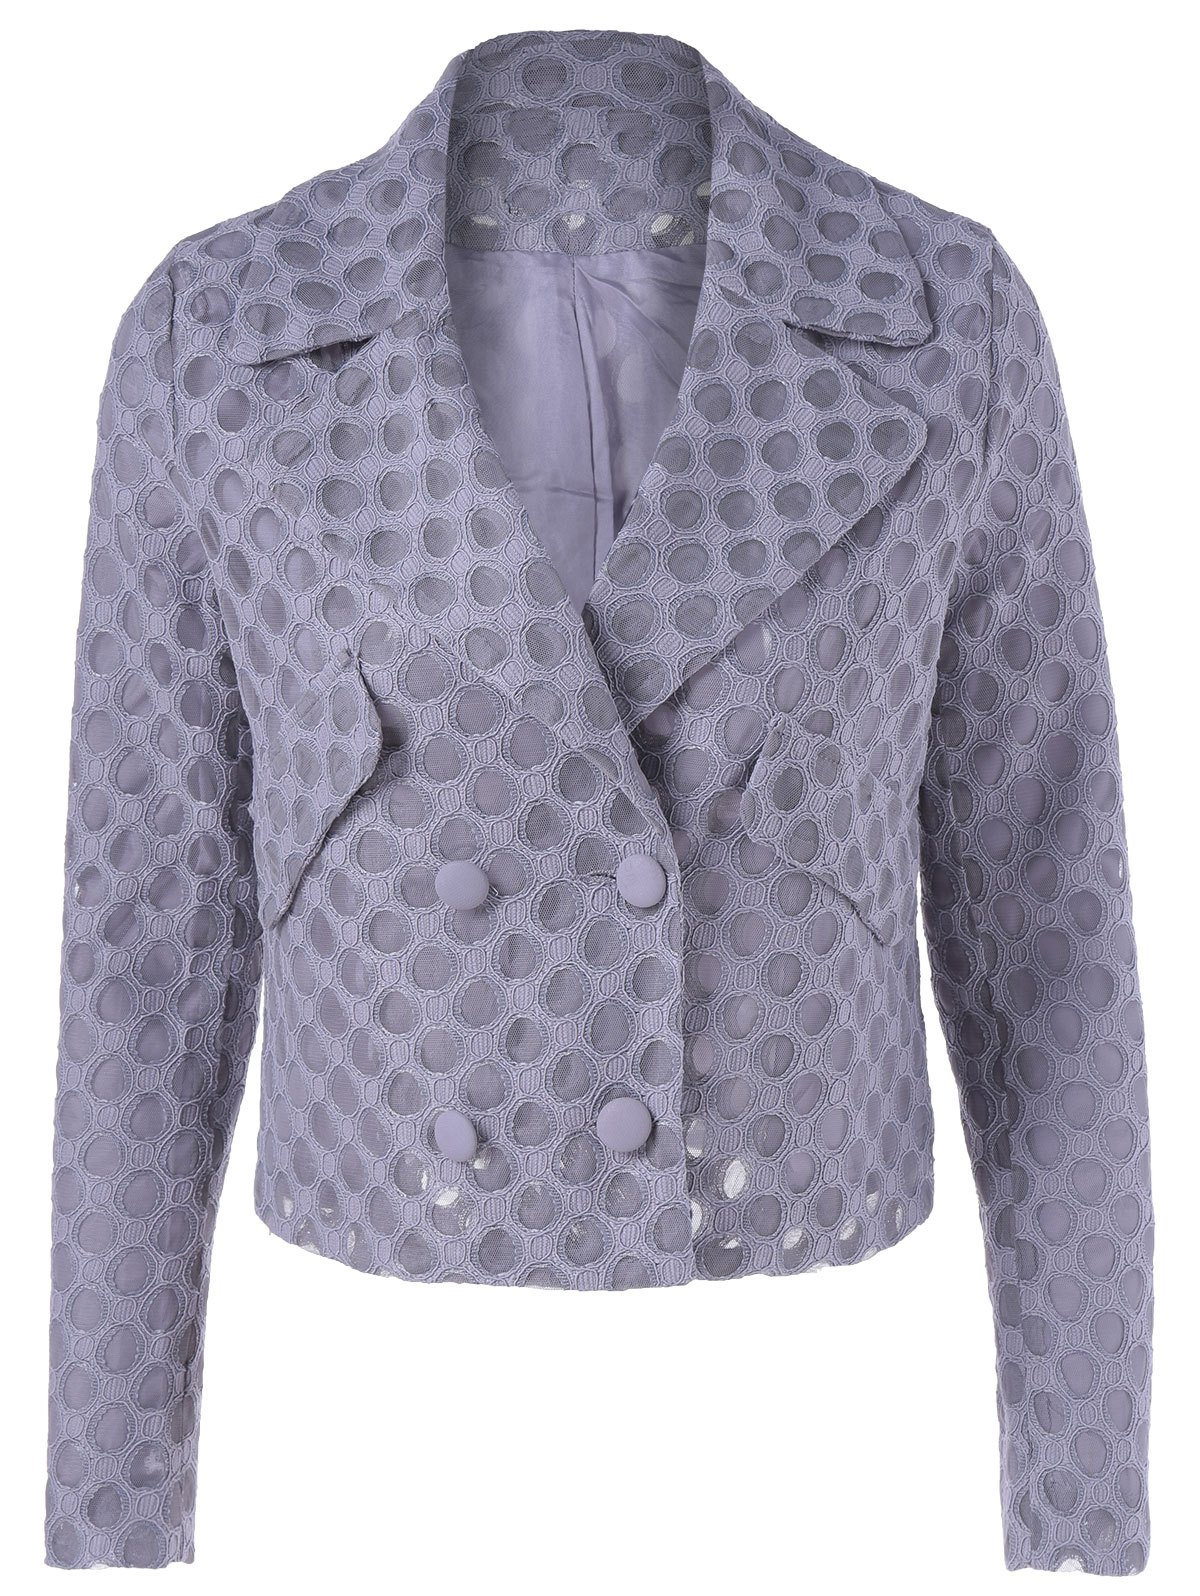 Casual Women's Turn-down Collar Button Mesh Long Sleeves Jacket